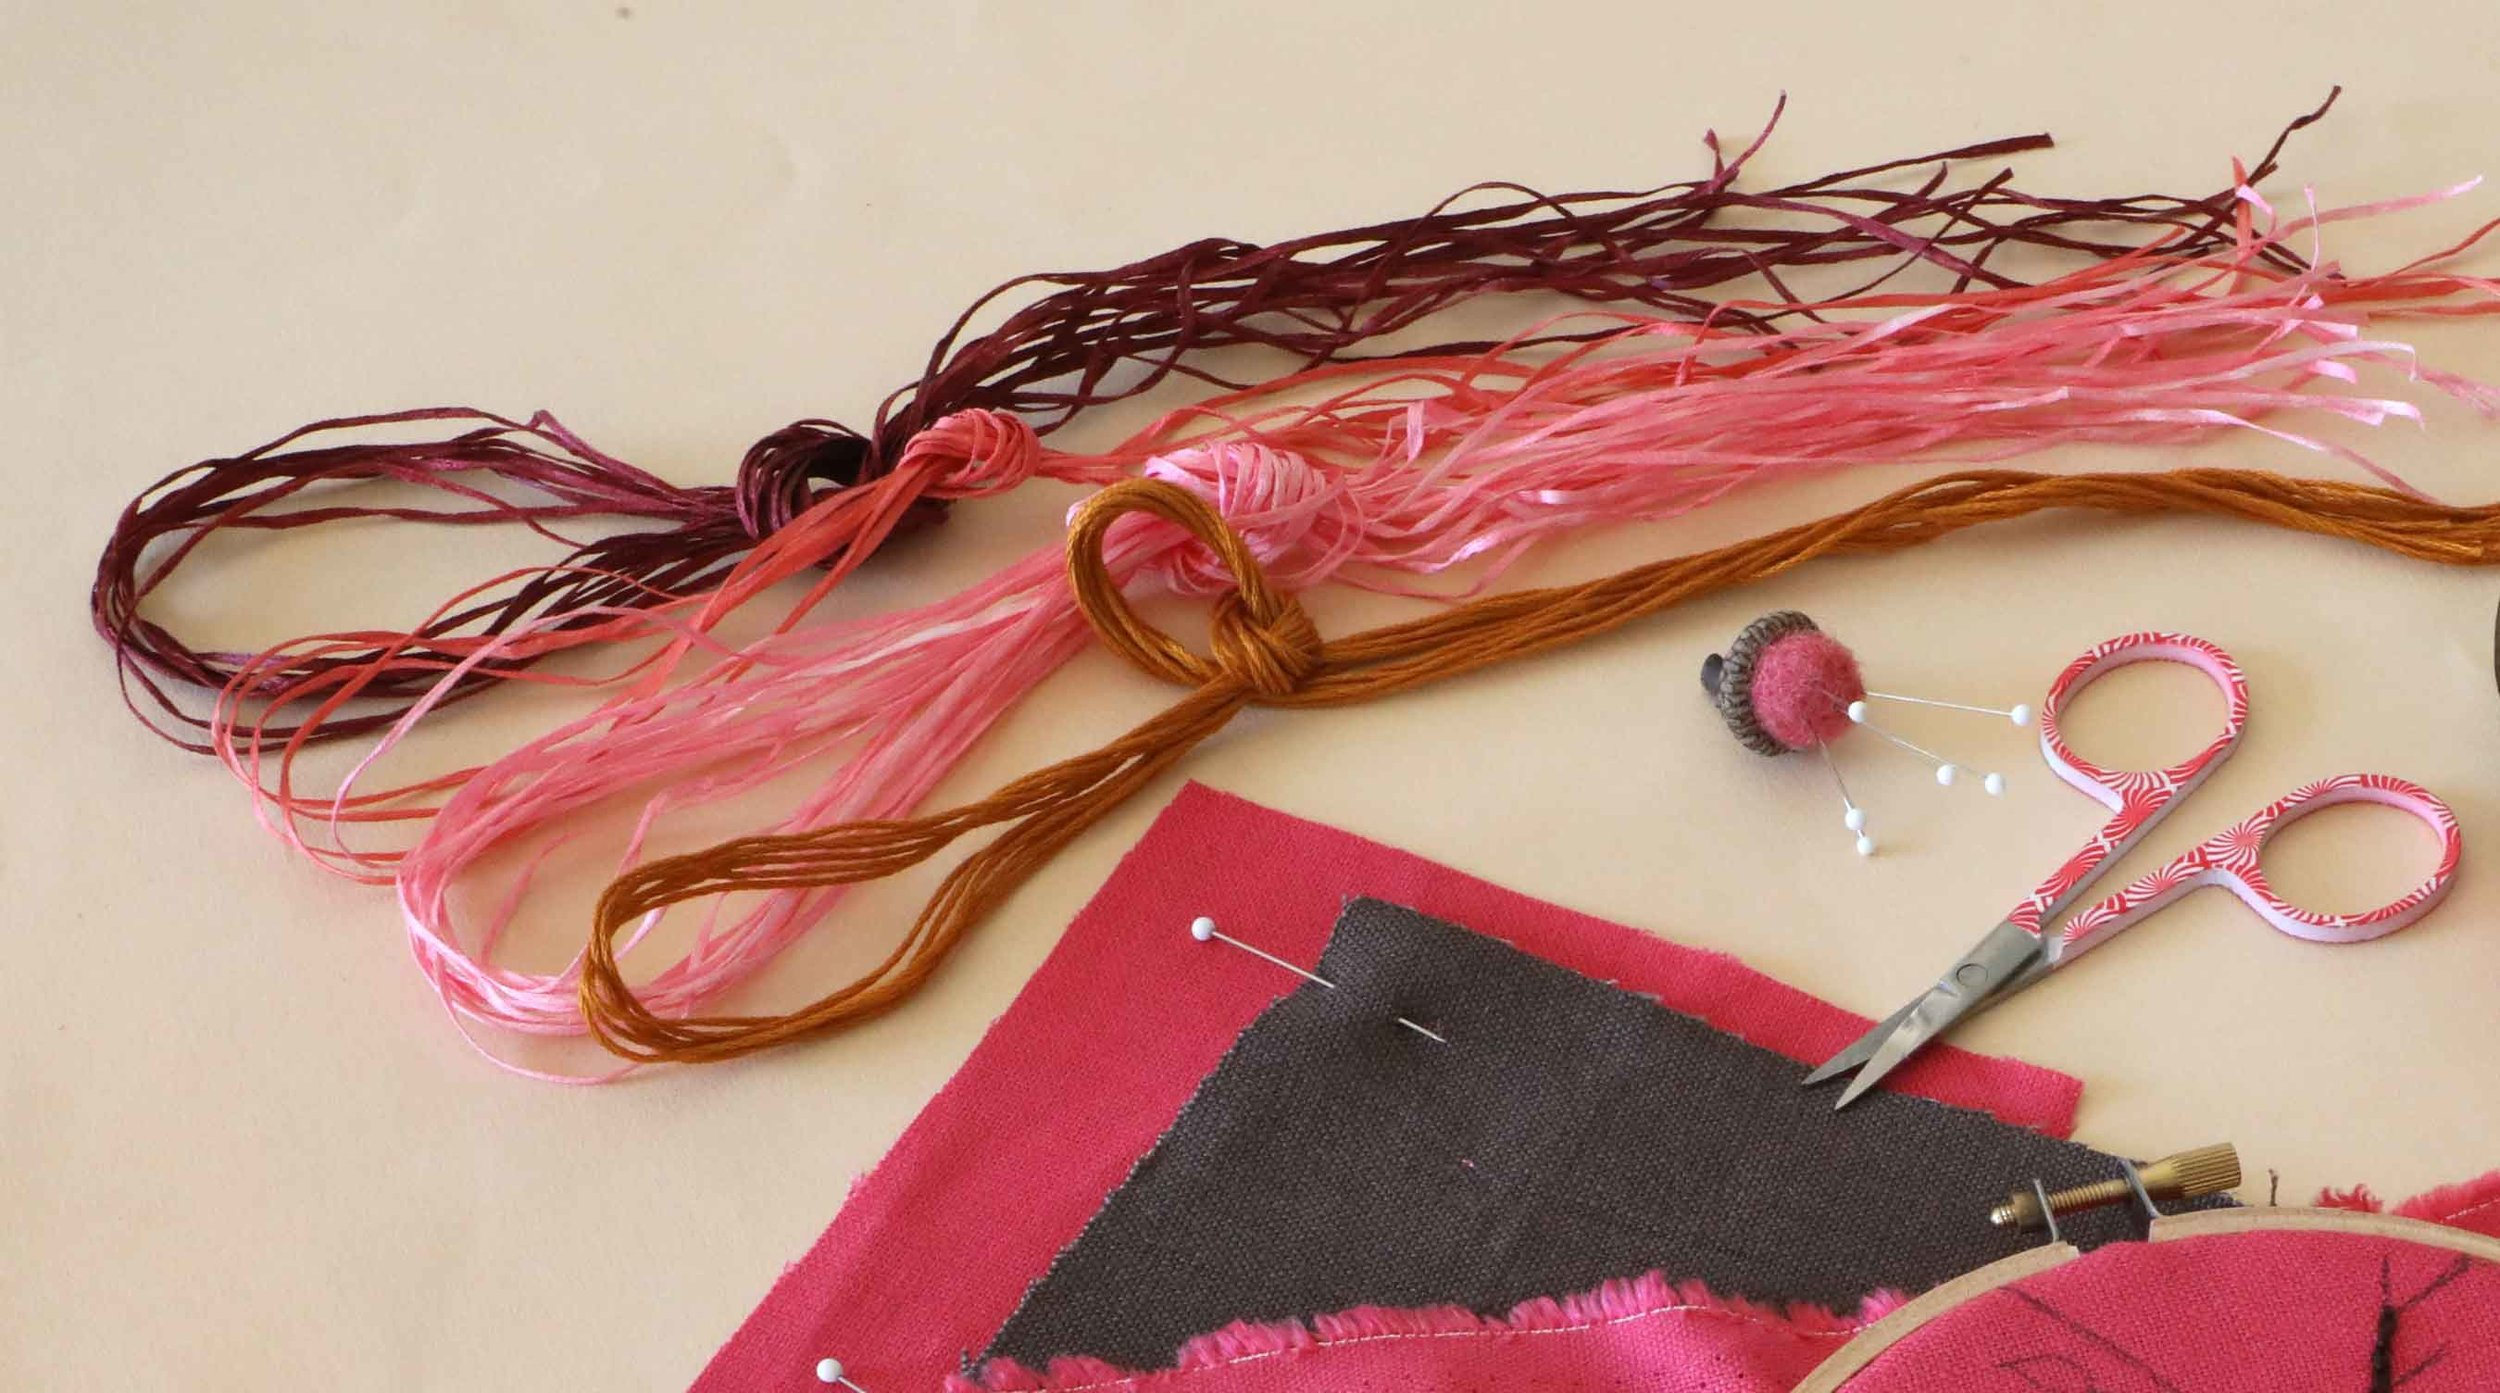 With a bright pink linen to stitch on, we chose a more sedate, vintage feel for the embroidery floss and straw silk colors. Our plum blossom design celebrates Spring renewal, in the spirit of Hanami.